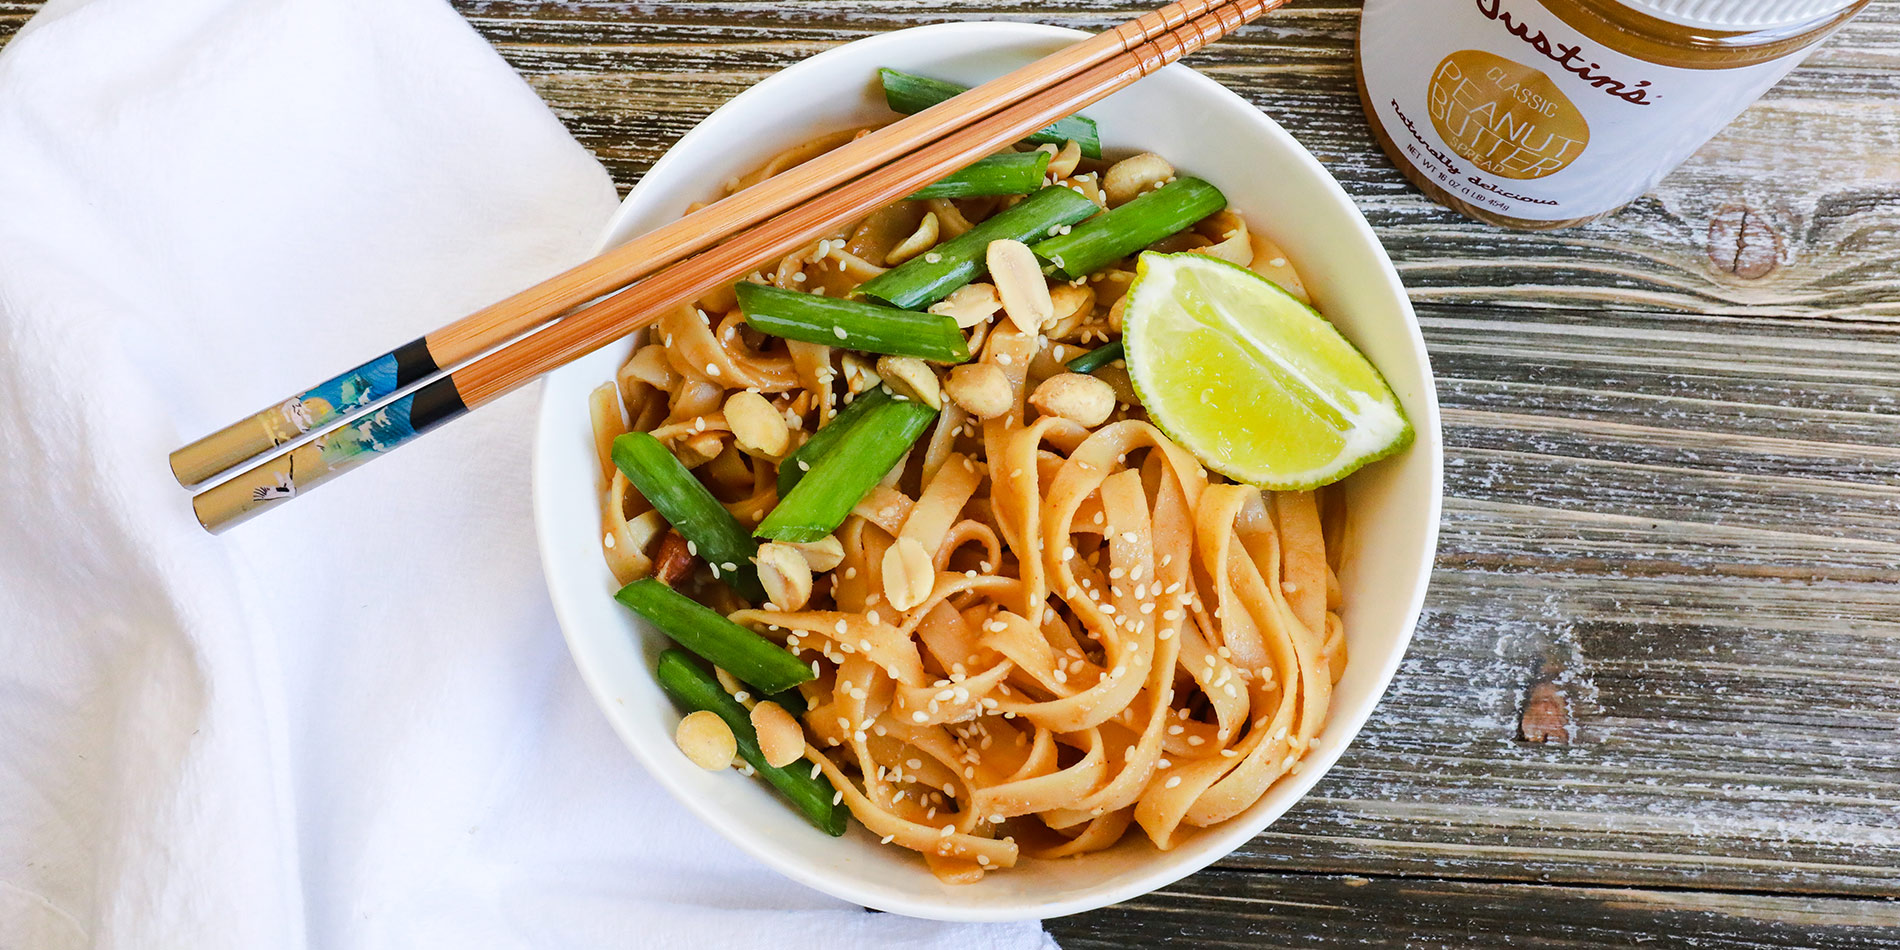 Spicy Peanut Butter Pasta with sesame seeds, peanuts, green onions and a piece of lime on a white bowl with chopsticks.